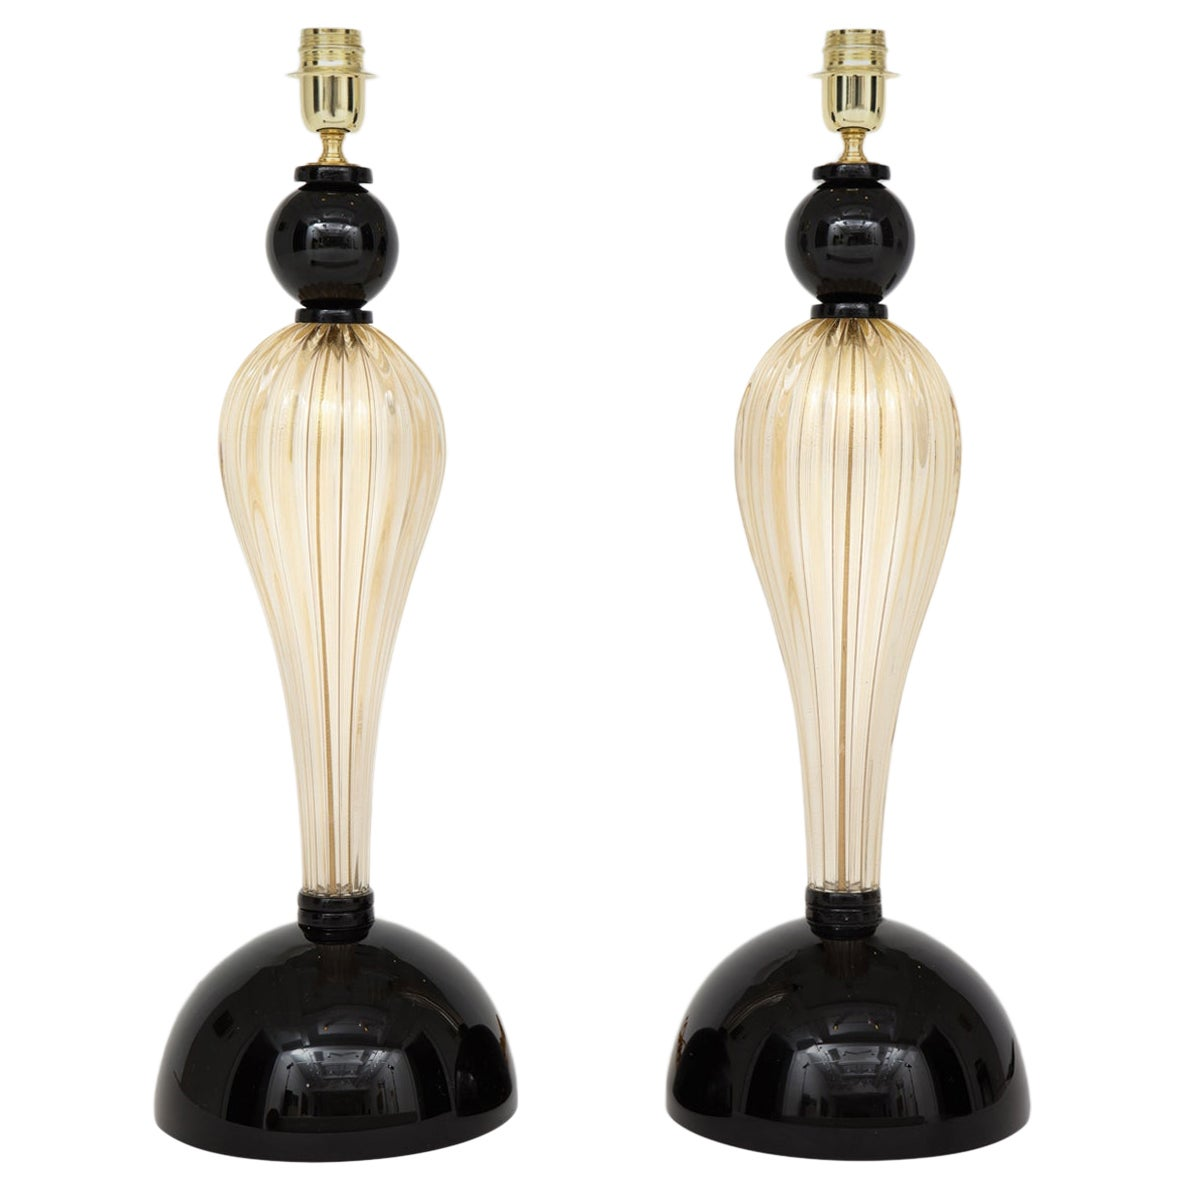 Pair of Tall Gold and Black Murano Glass Lamps, Signed, Italy